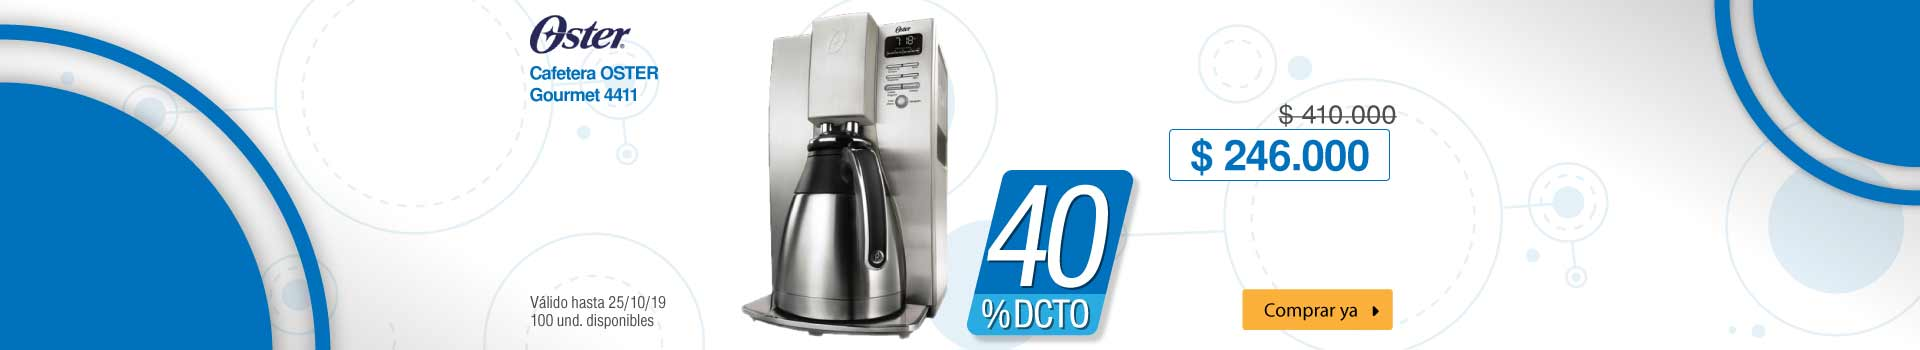 AK-MENORES-CYBER-OSTER-CAFETERA-HIPER3-OCT19